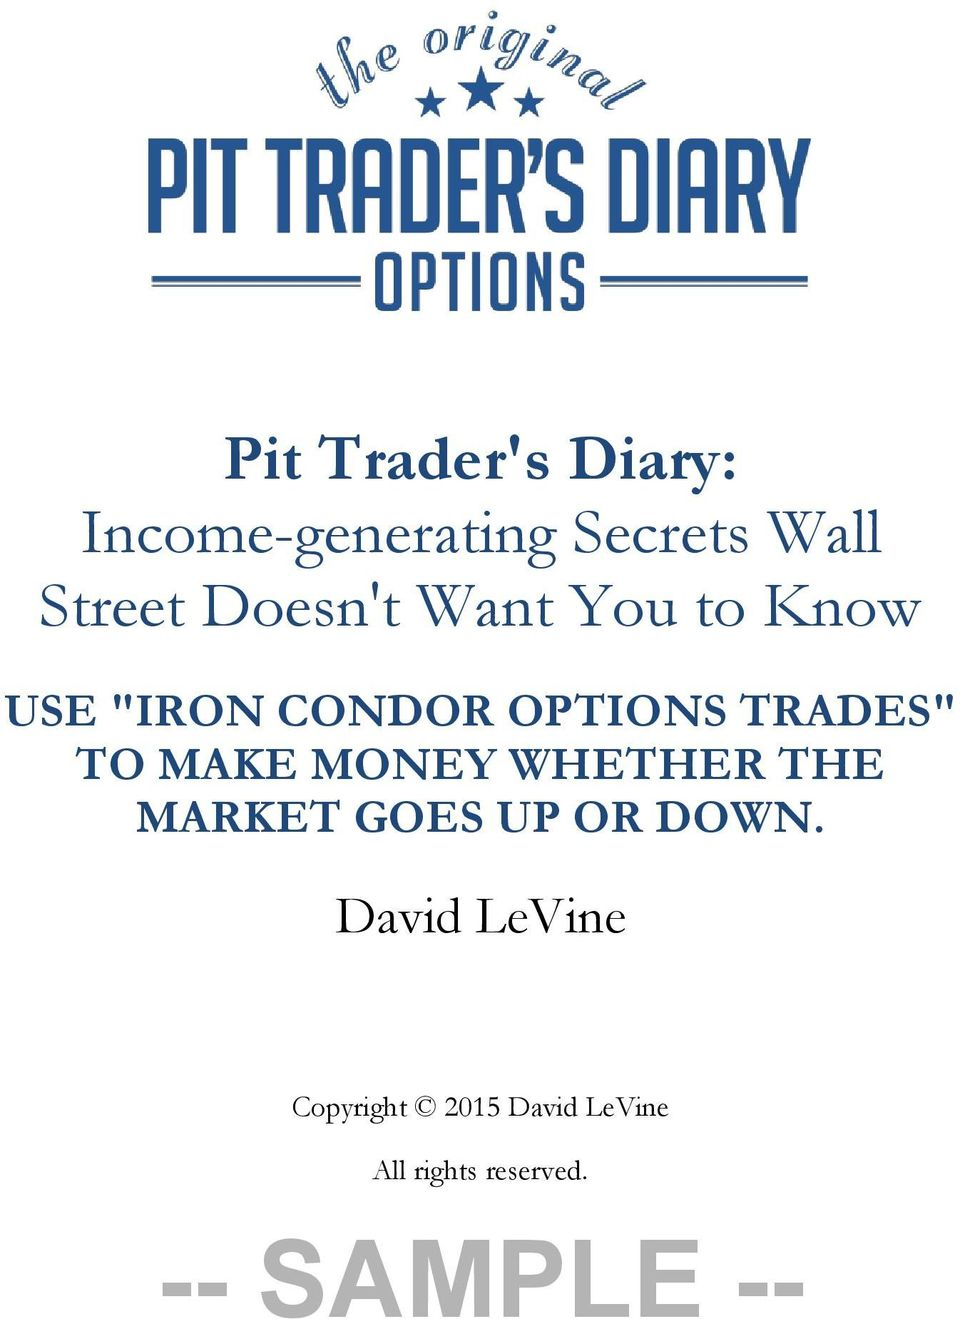 What is an iron condor option trade